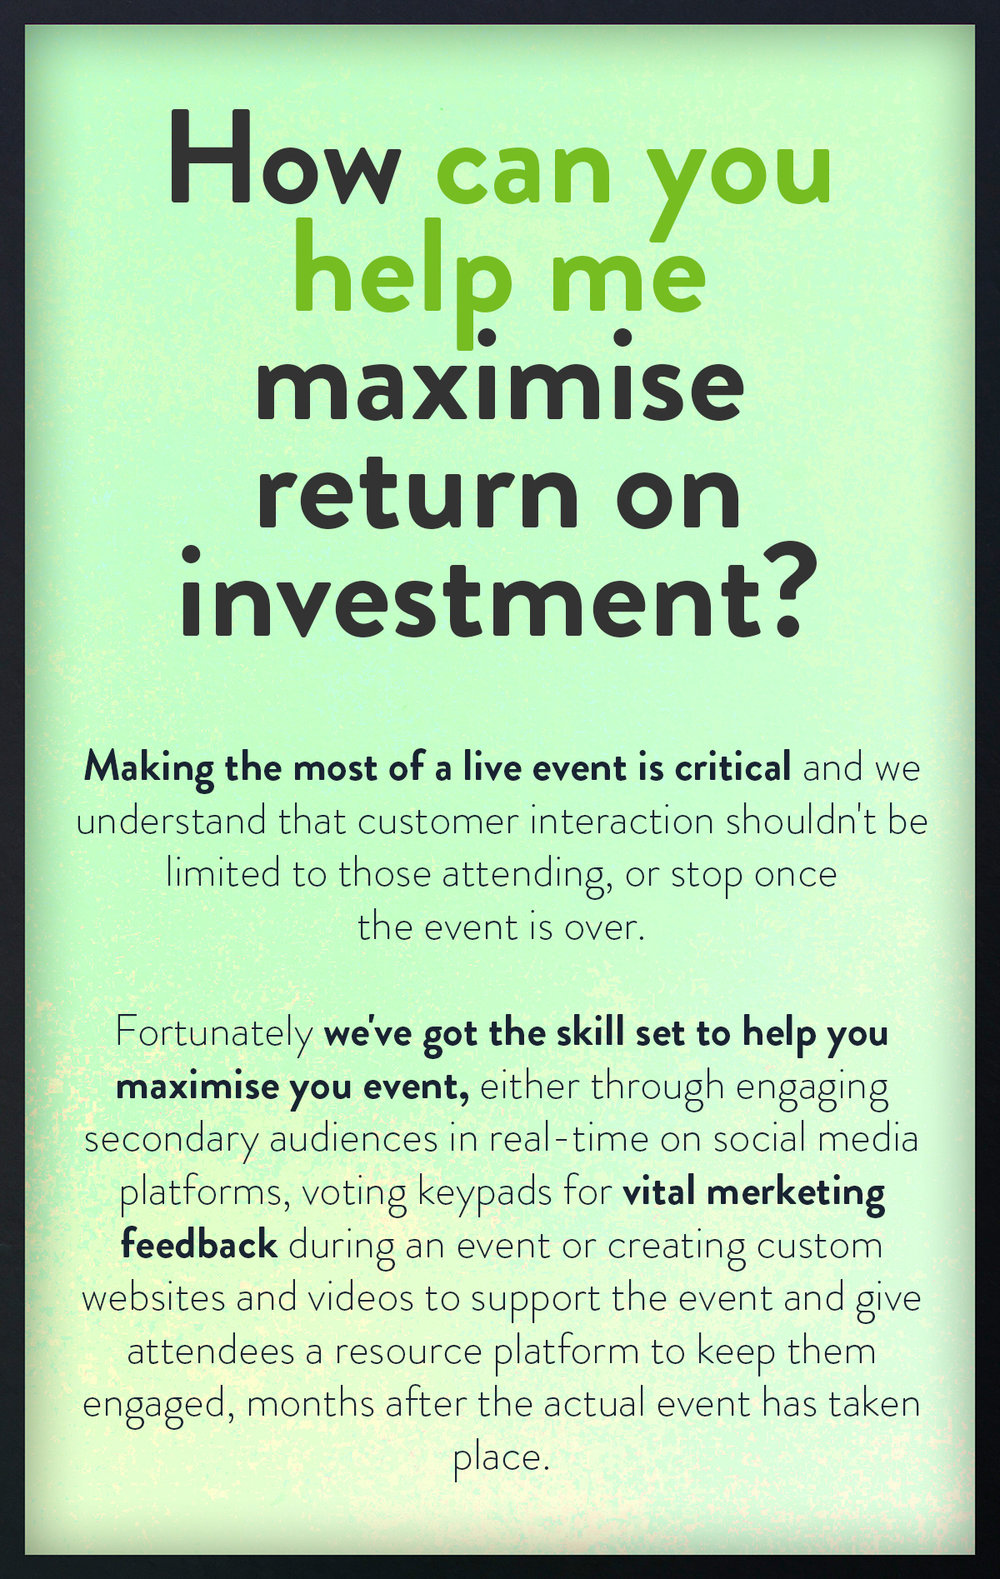 live-events-return-on-investment.jpg